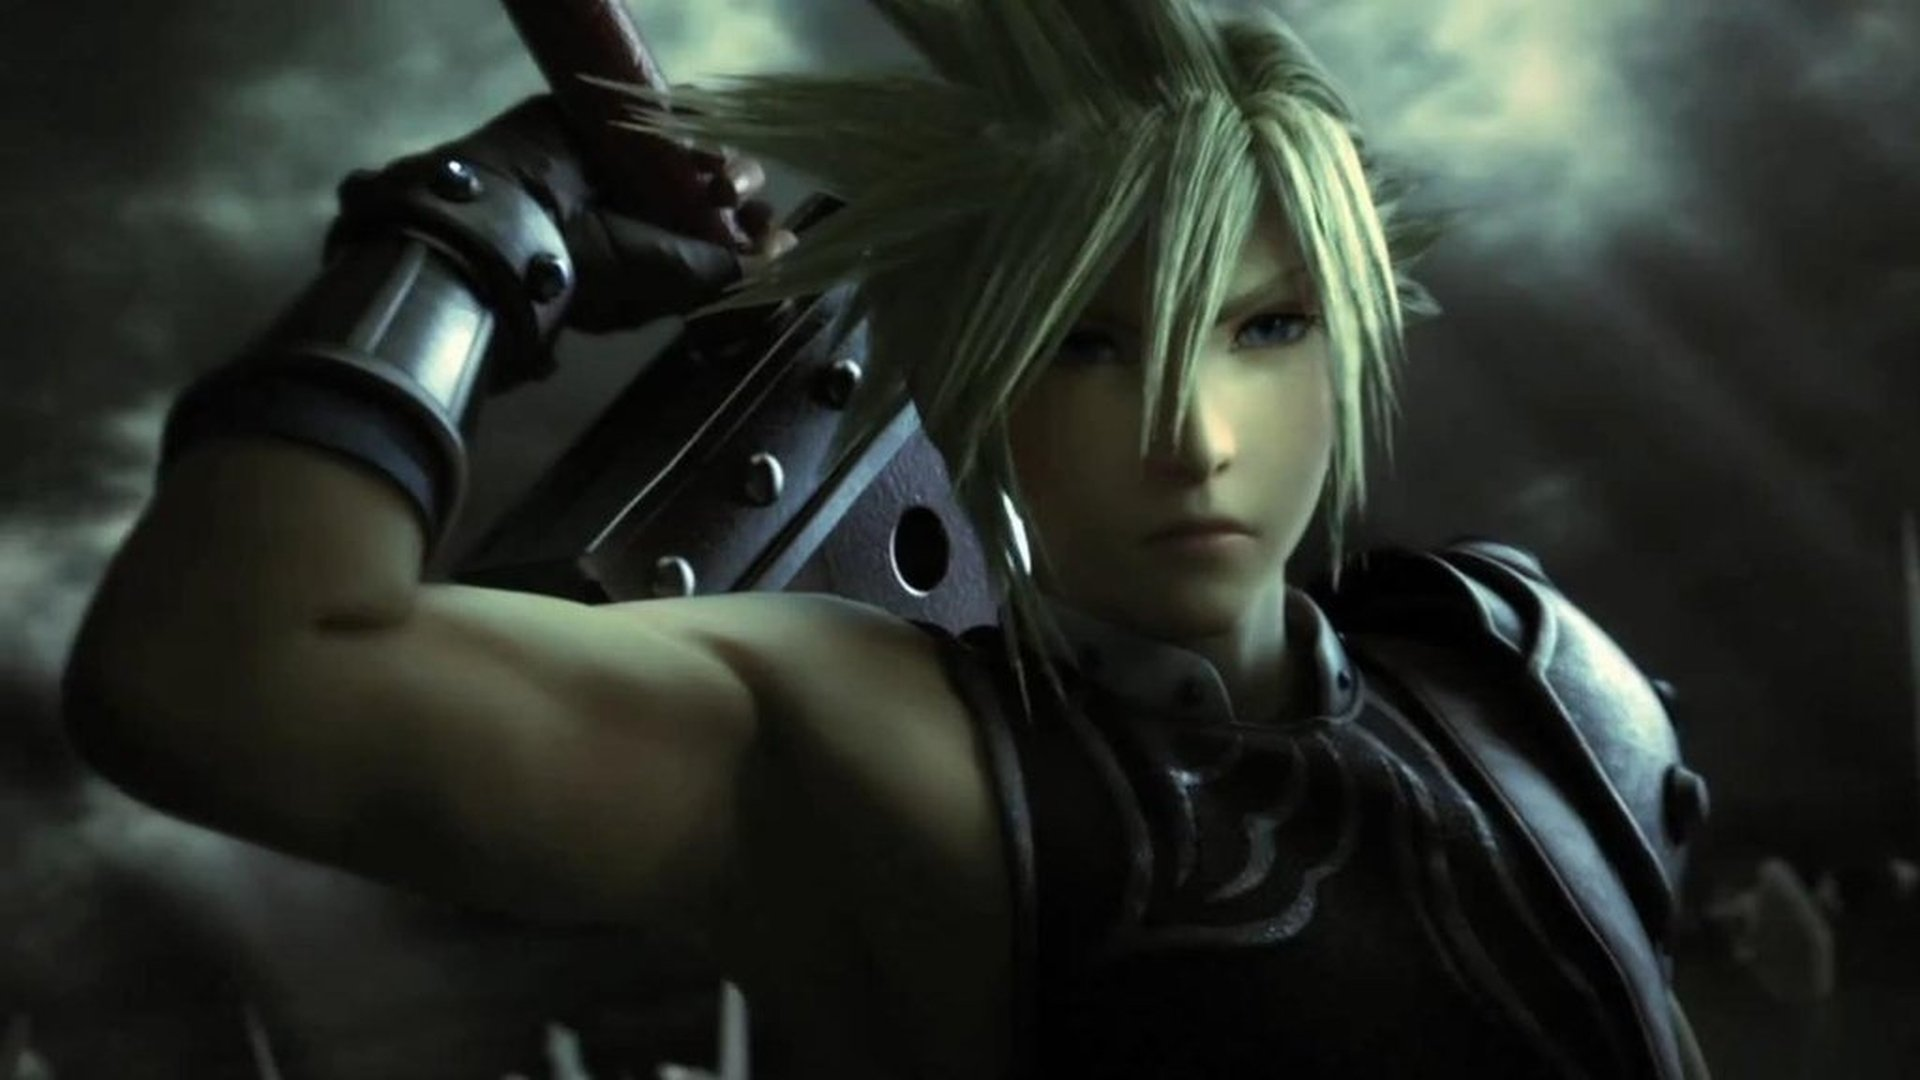 Cloud Strife Hd Wallpaper Background Image 1920x1080